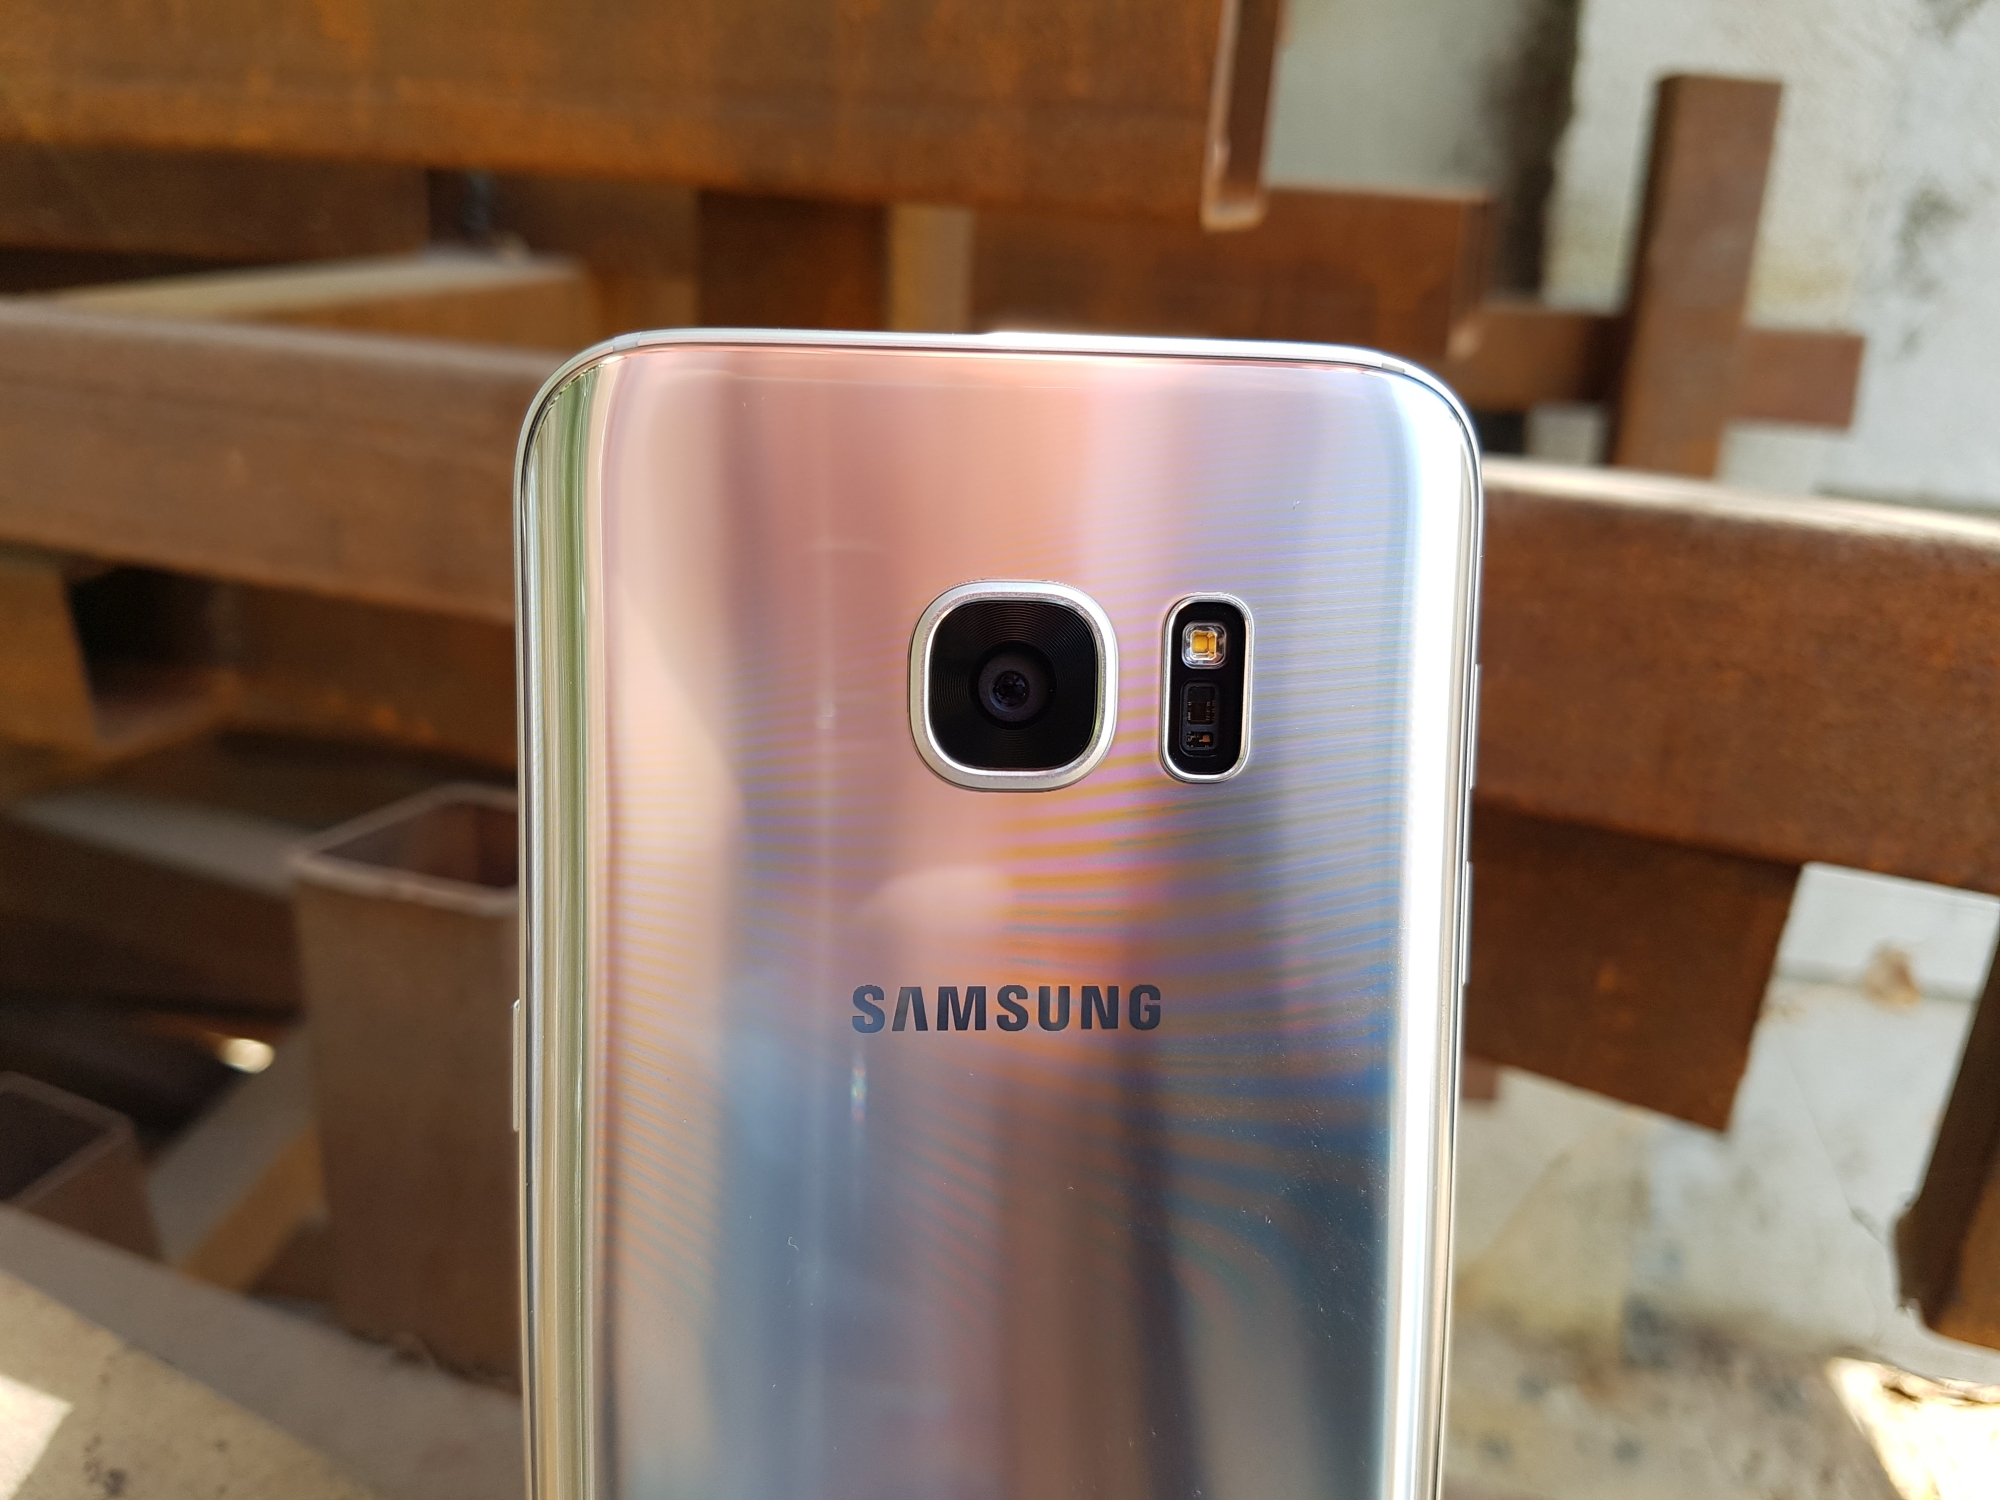 Samsung young 2 sm g130h power on off key jumper track ways - The Galaxy S7 And Galaxy S7 Edge Have Best In Class Cameras But Consumers Who Enjoy These Devices Often Do So Without Stopping To Consider The Effort